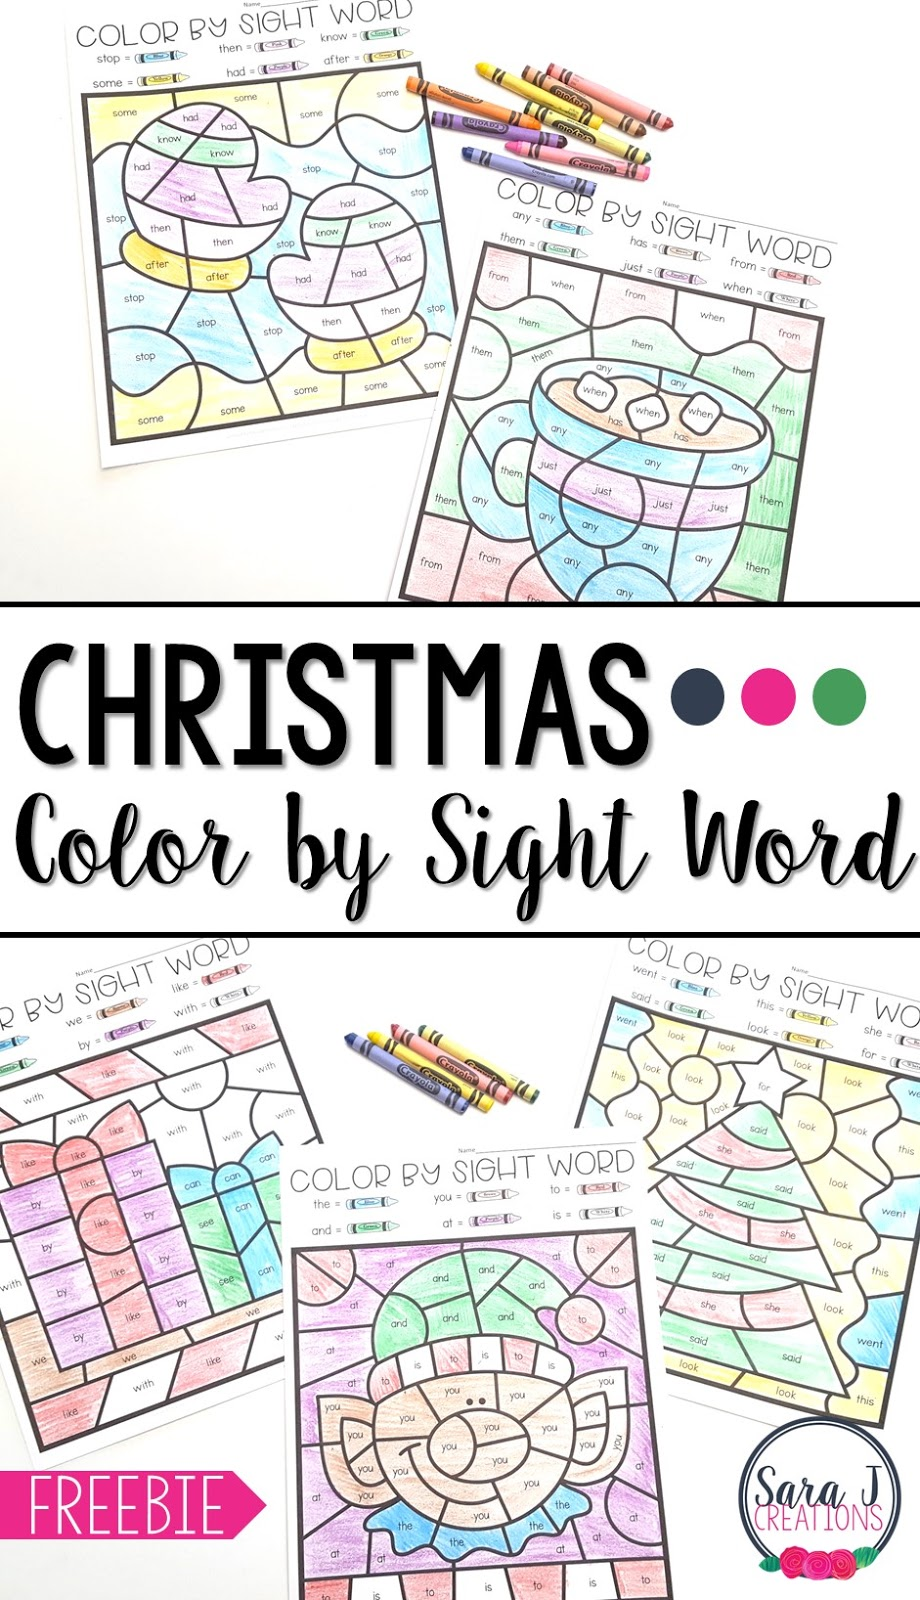 christmas color by sight word | sara j creations